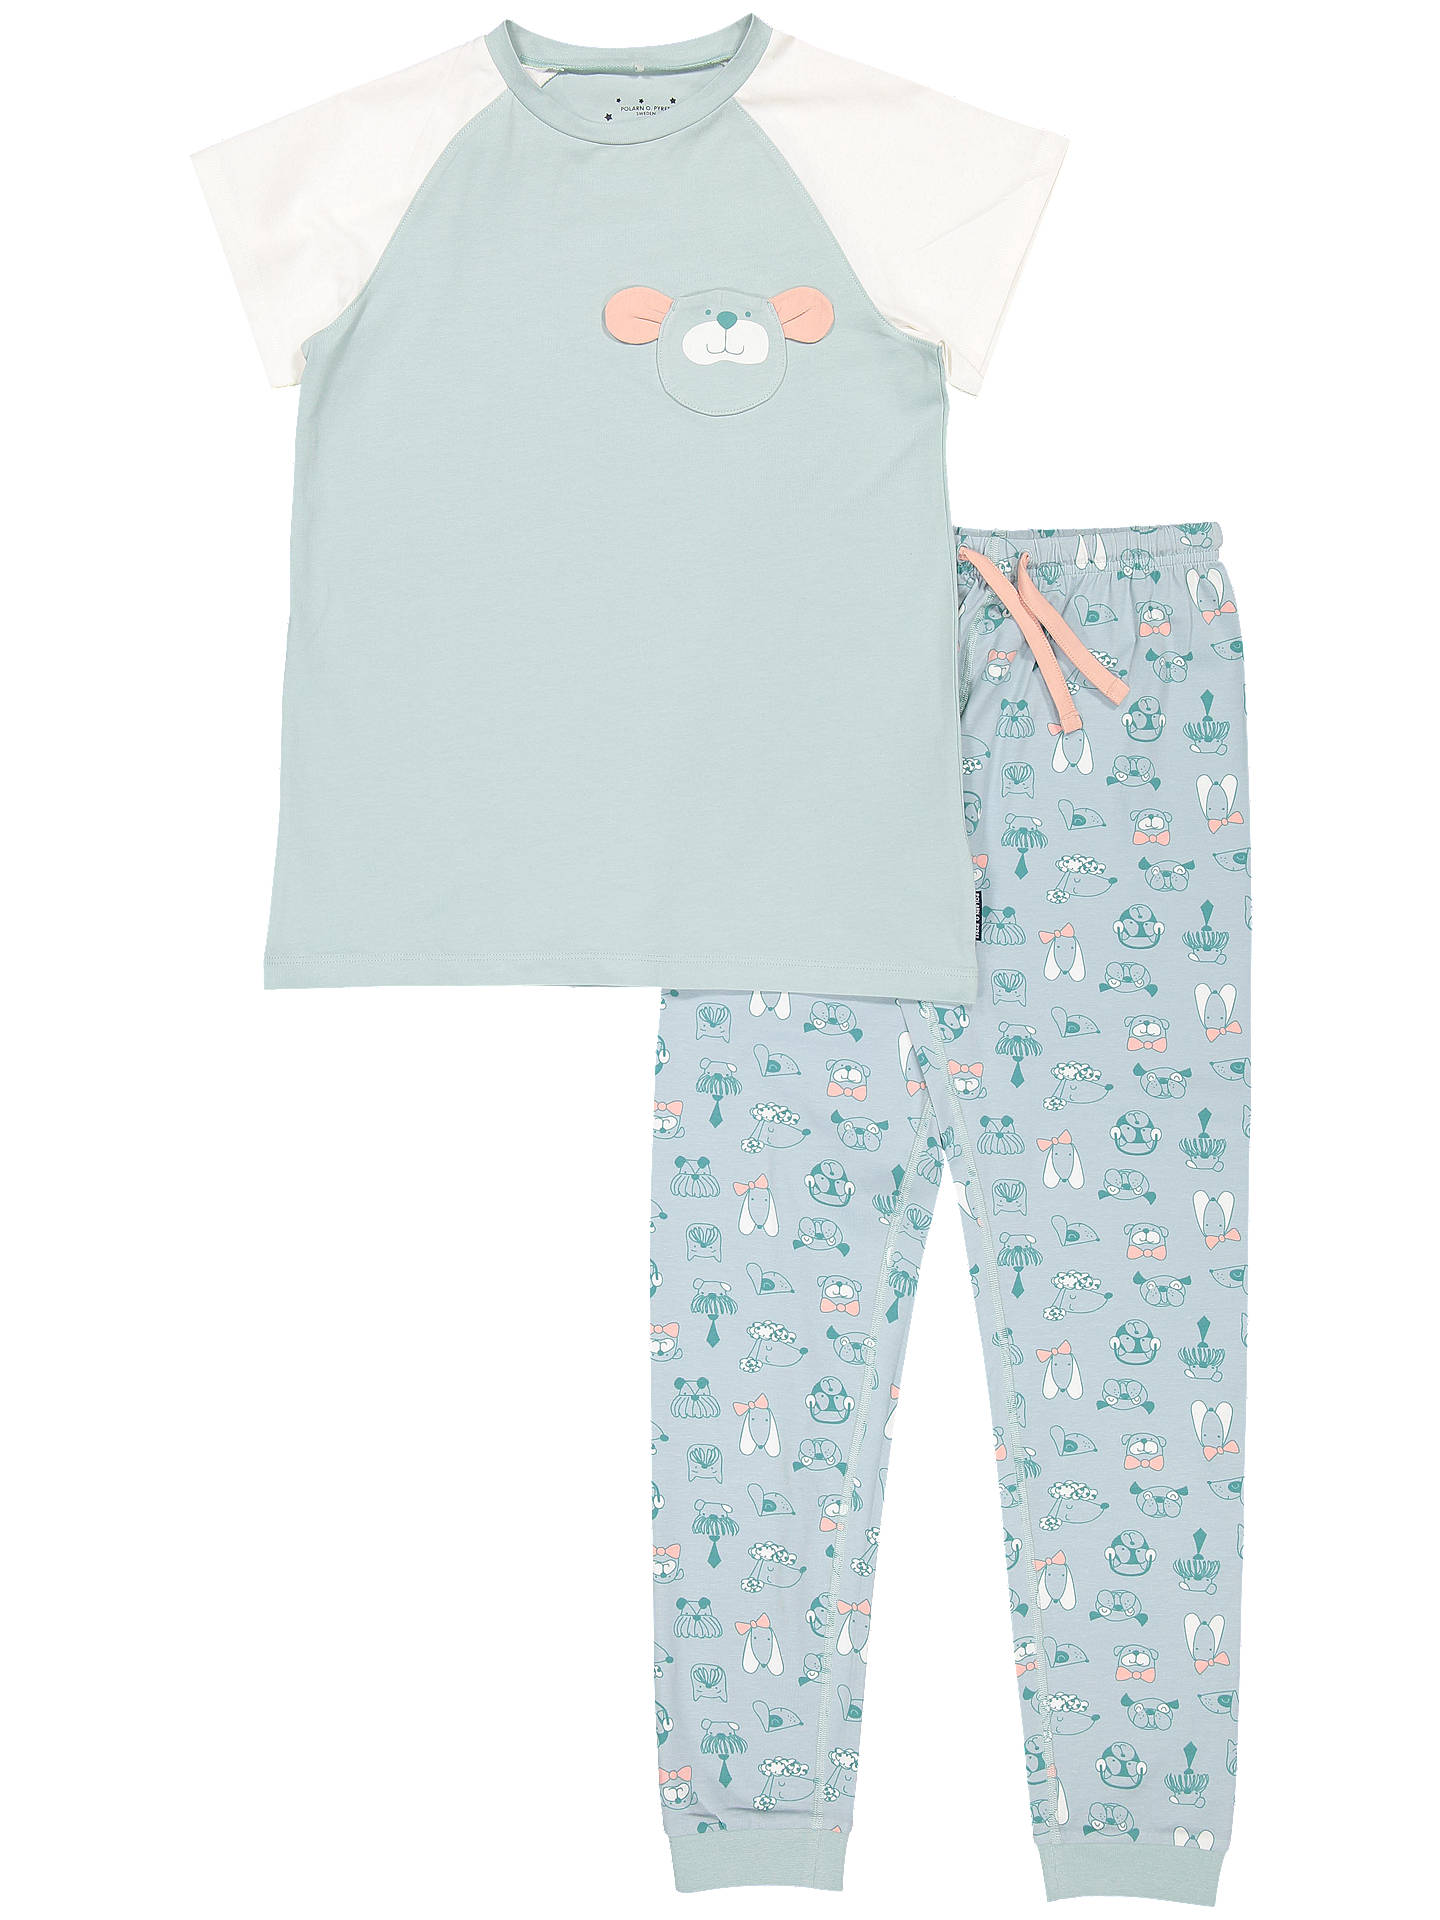 BuyPolarn O. Pyret Baby Organic Cotton Dog Pyjamas, Green, 12-24 months Online at johnlewis.com